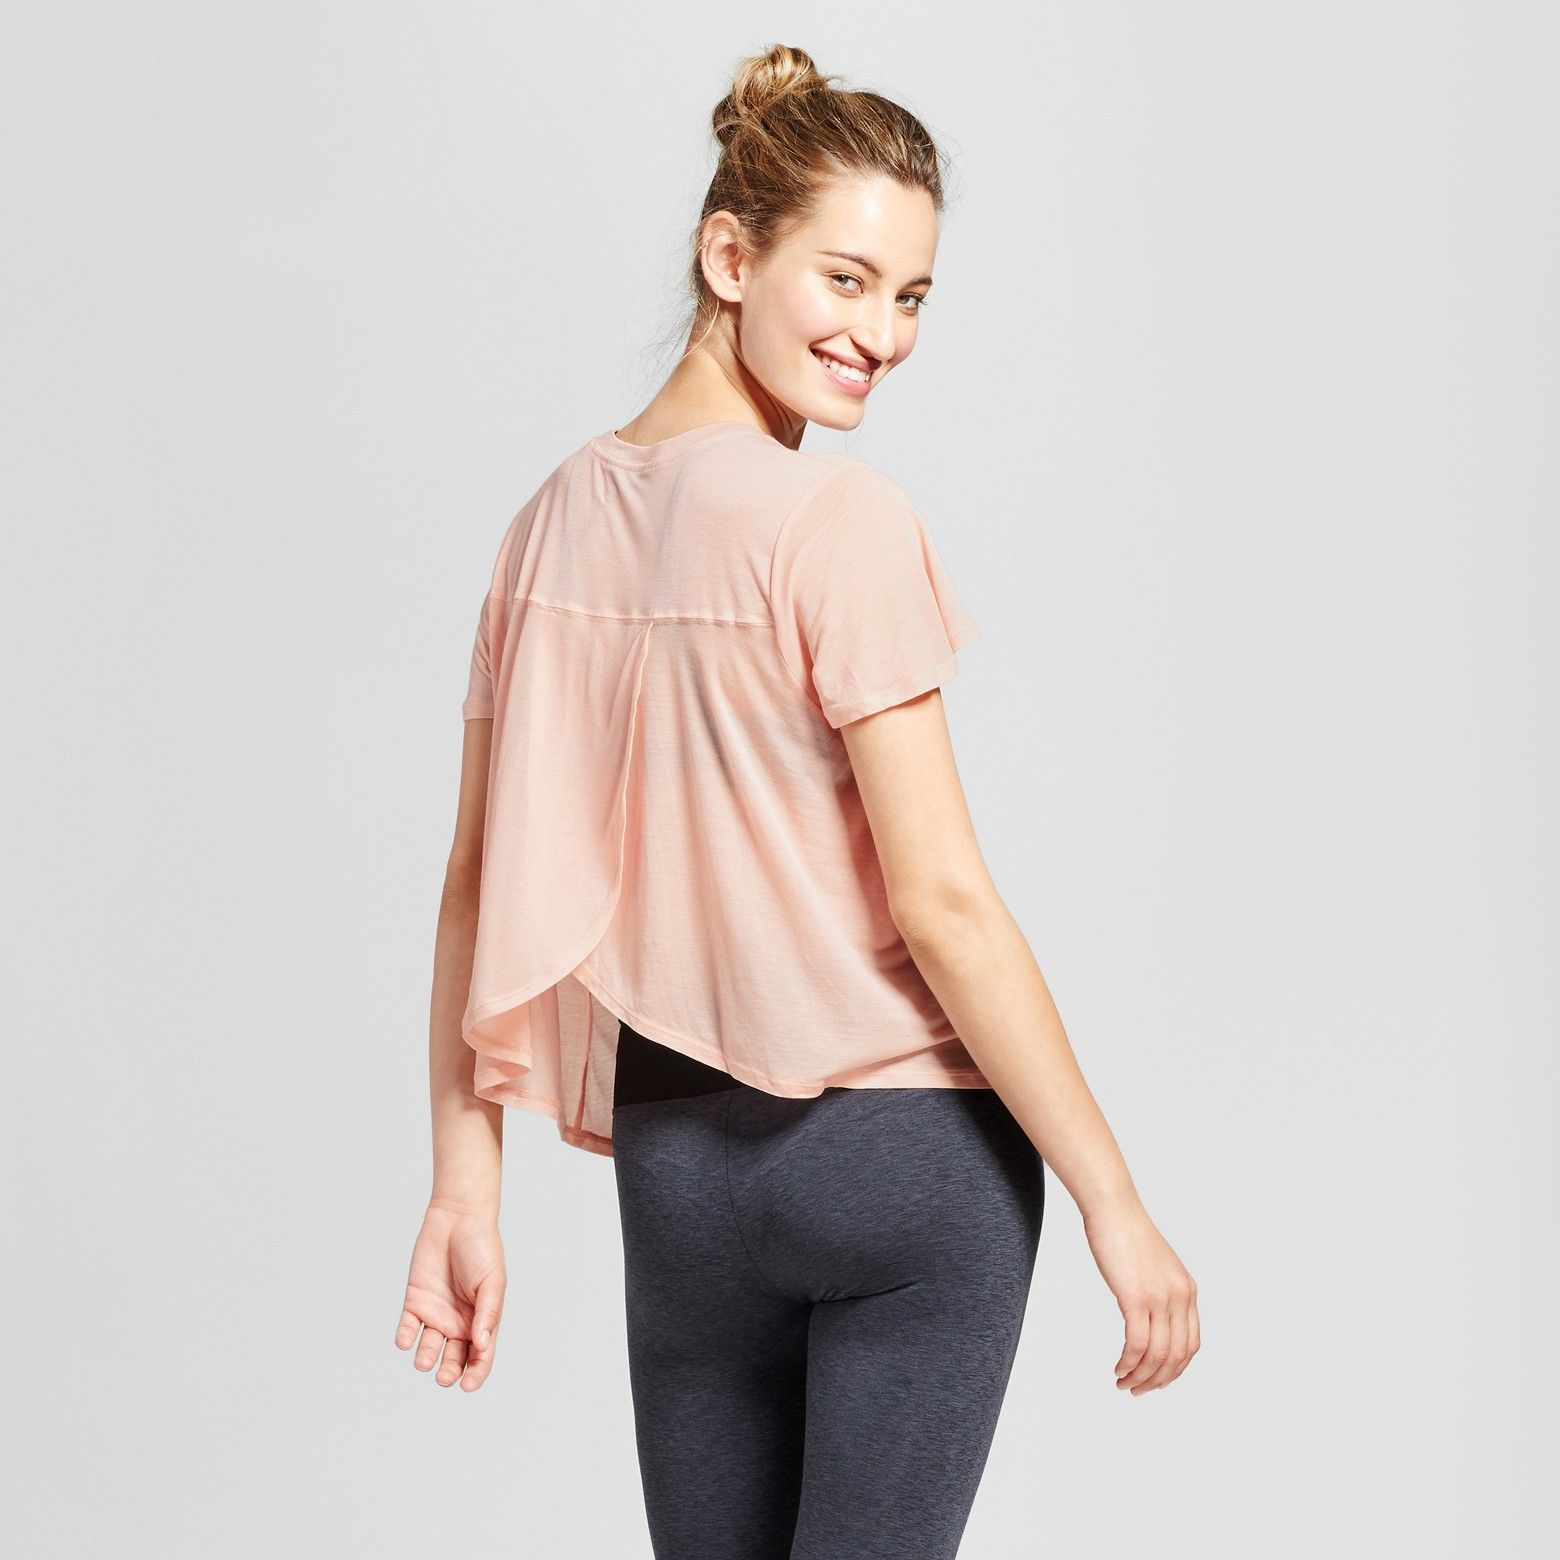 Every collection of workout clothes needs core layering pieces like